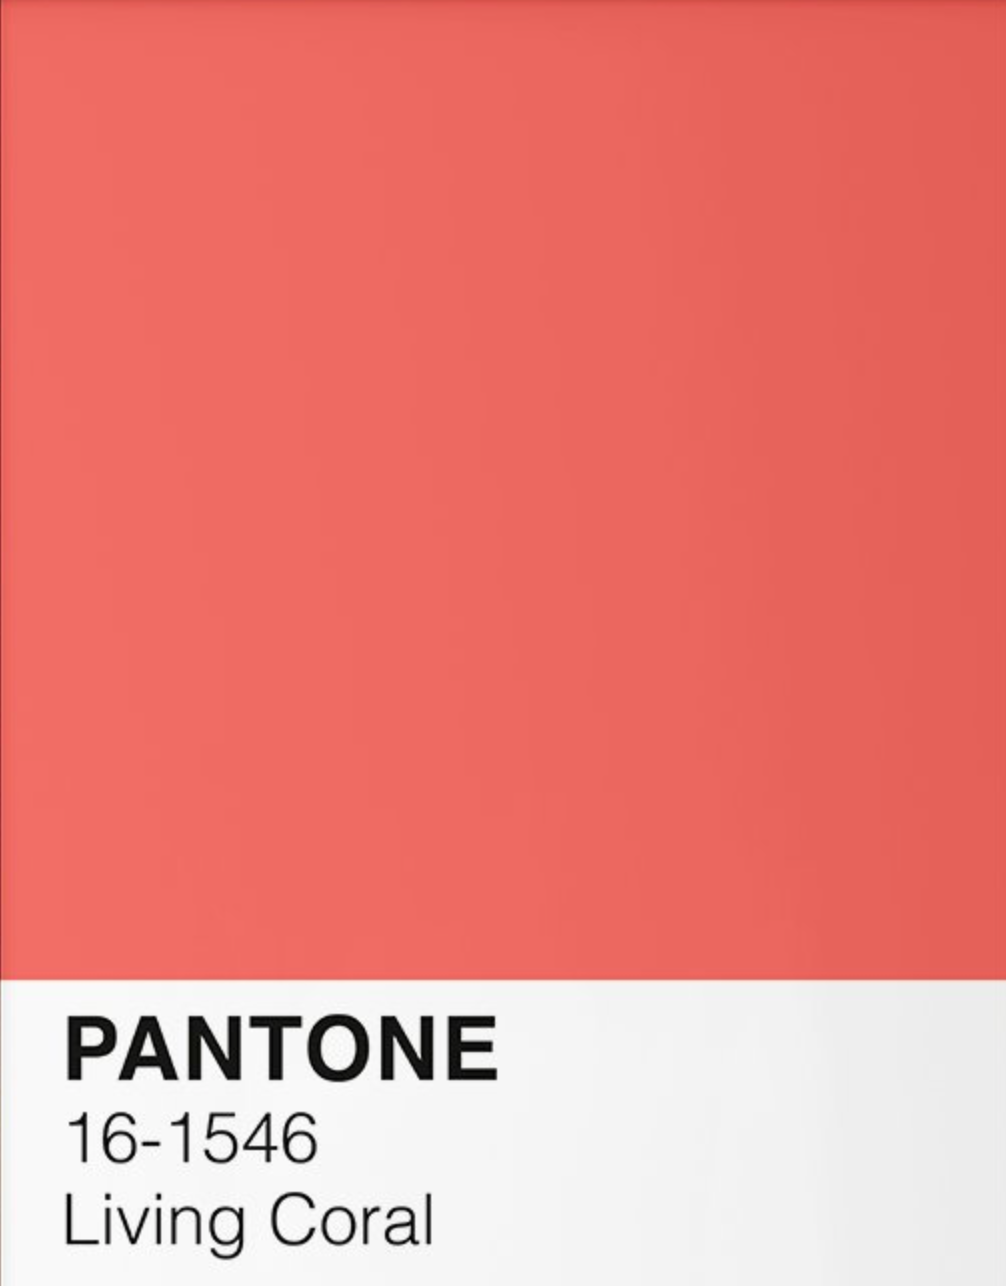 living-coral-pantone-color-of-the-year-2018.png